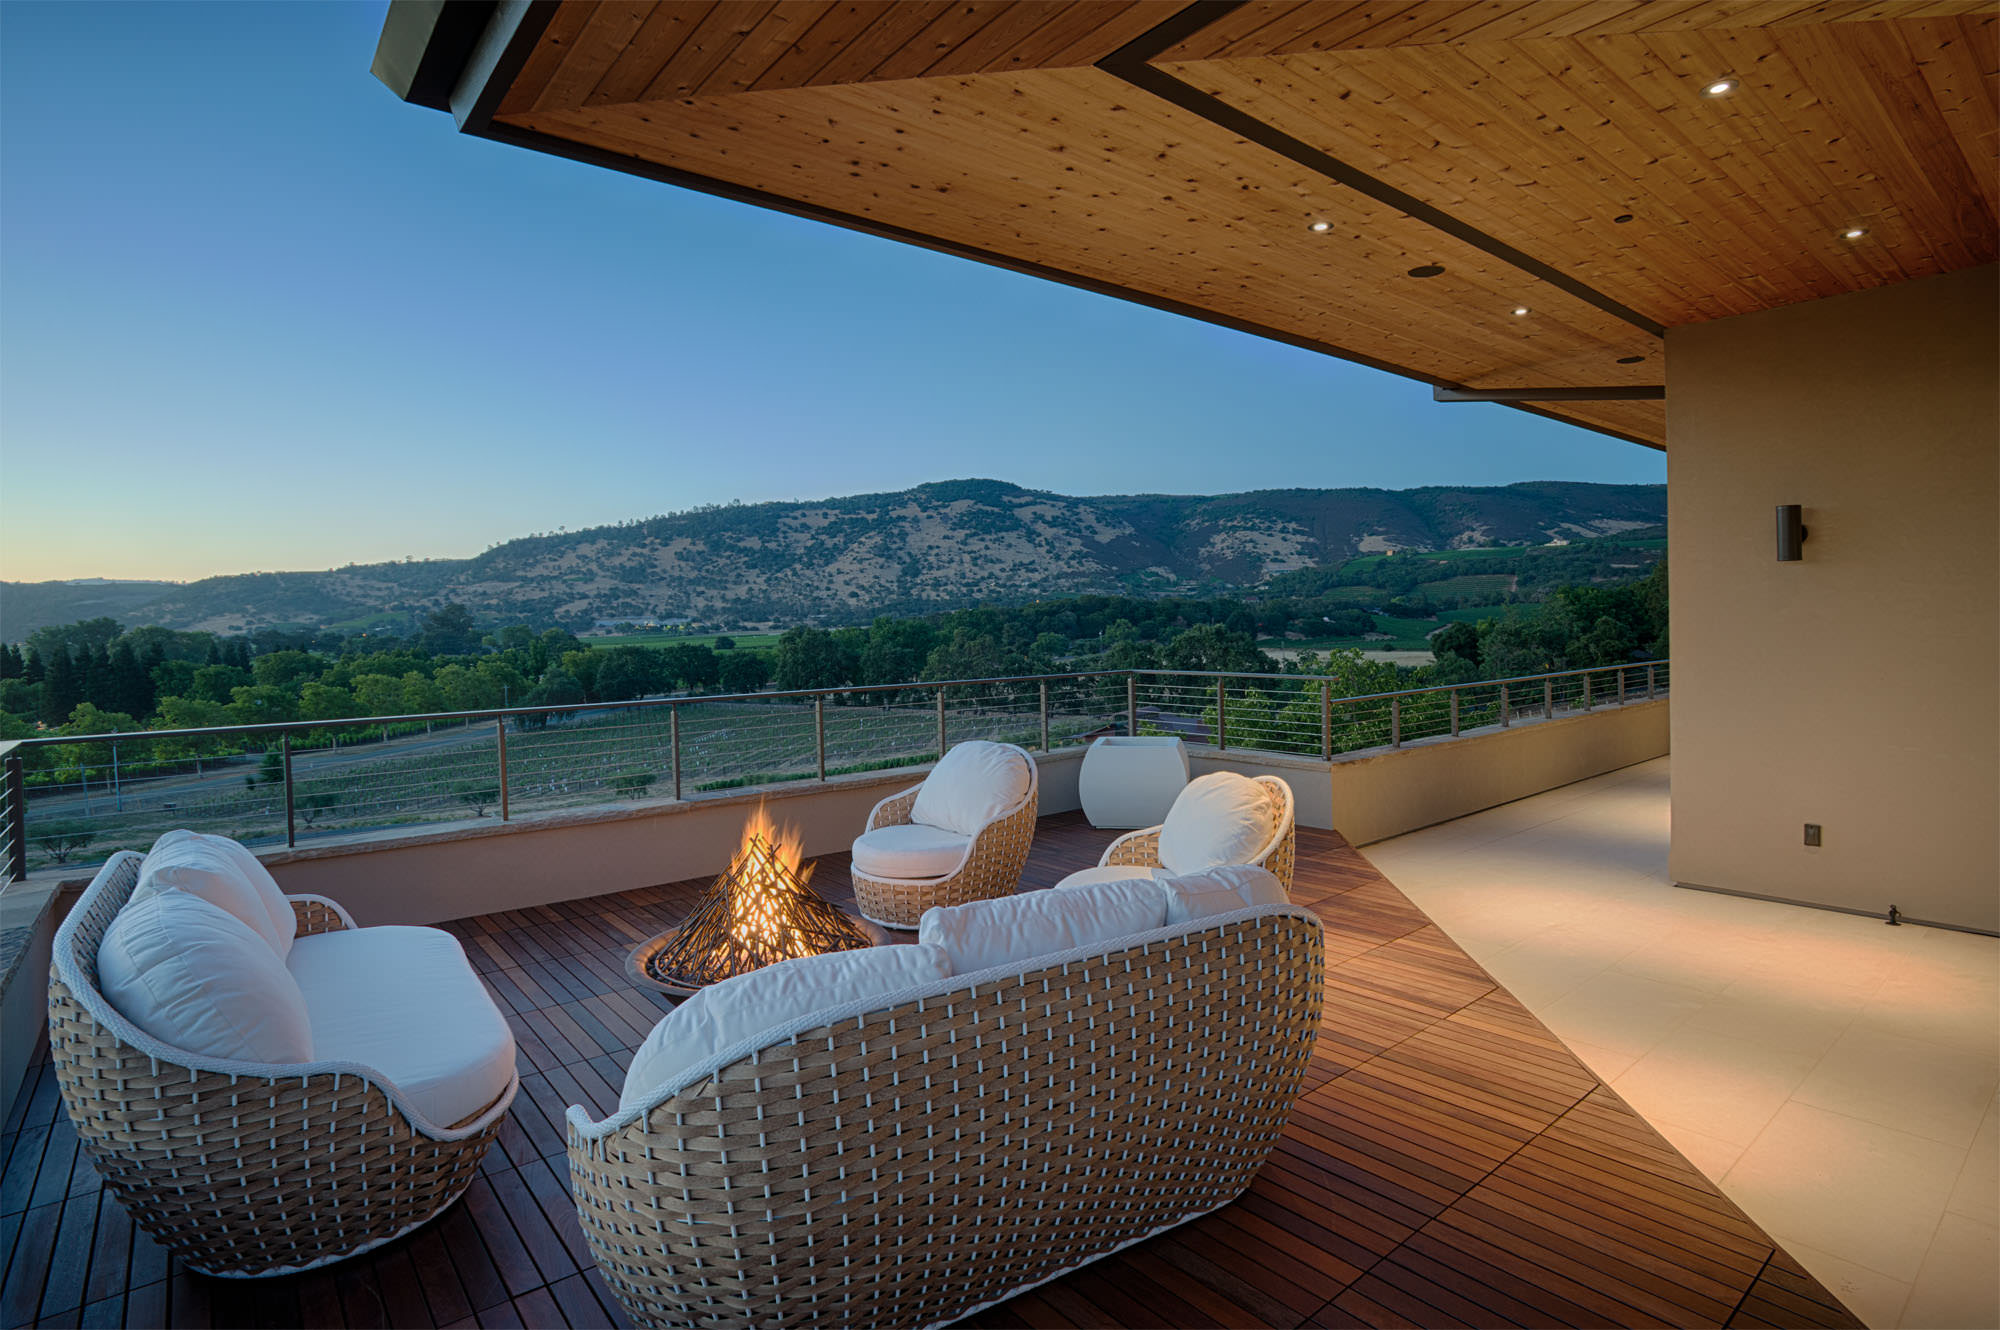 Patio overlooking vineyards